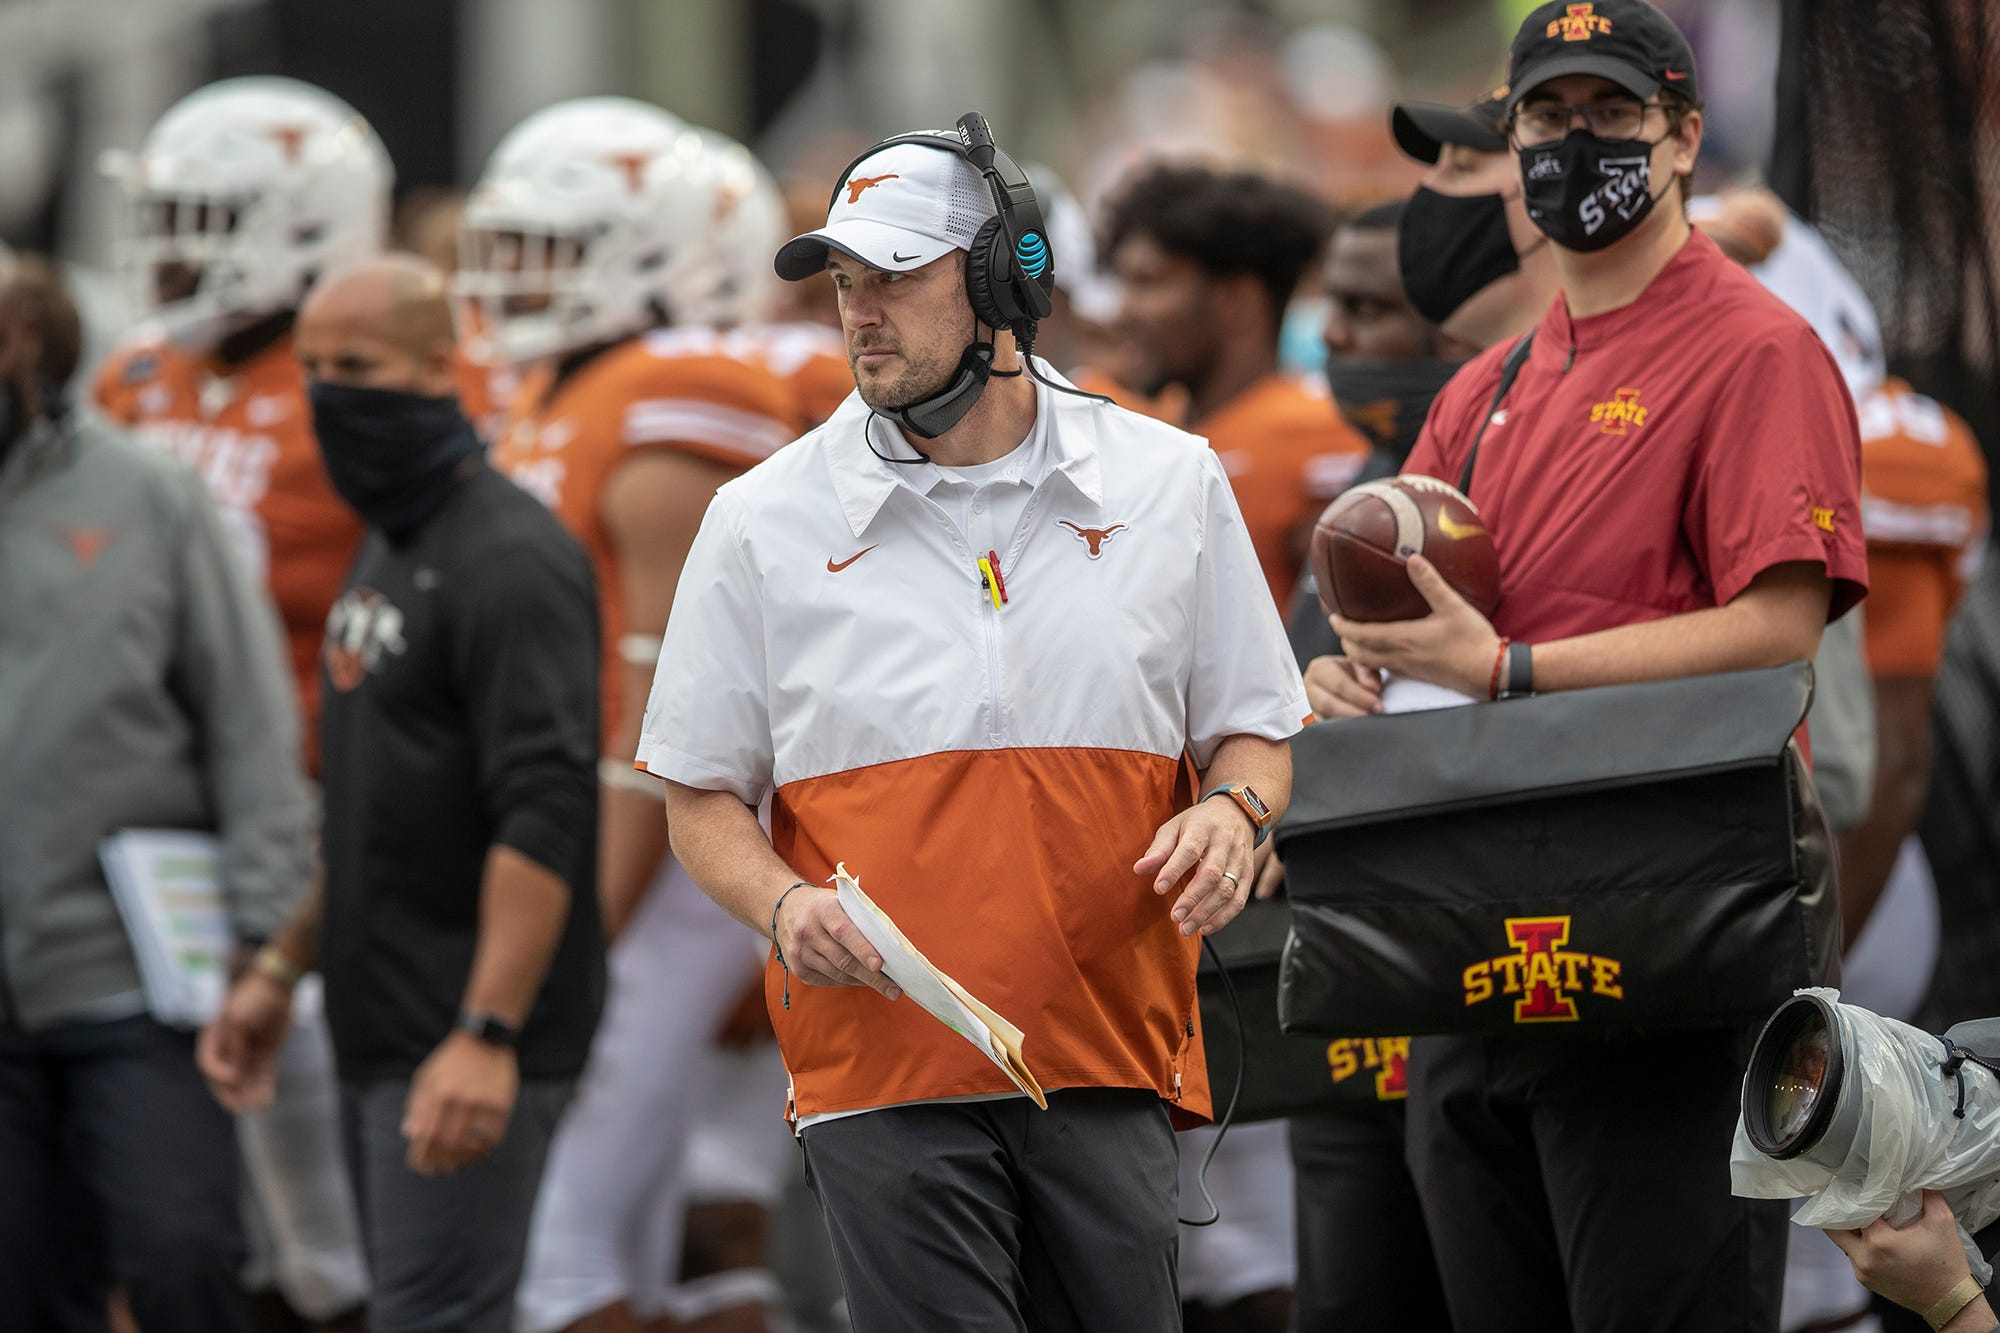 Opinion: Texas must deliberate on Tom Herman's cloudy future after crushing loss to Iowa State